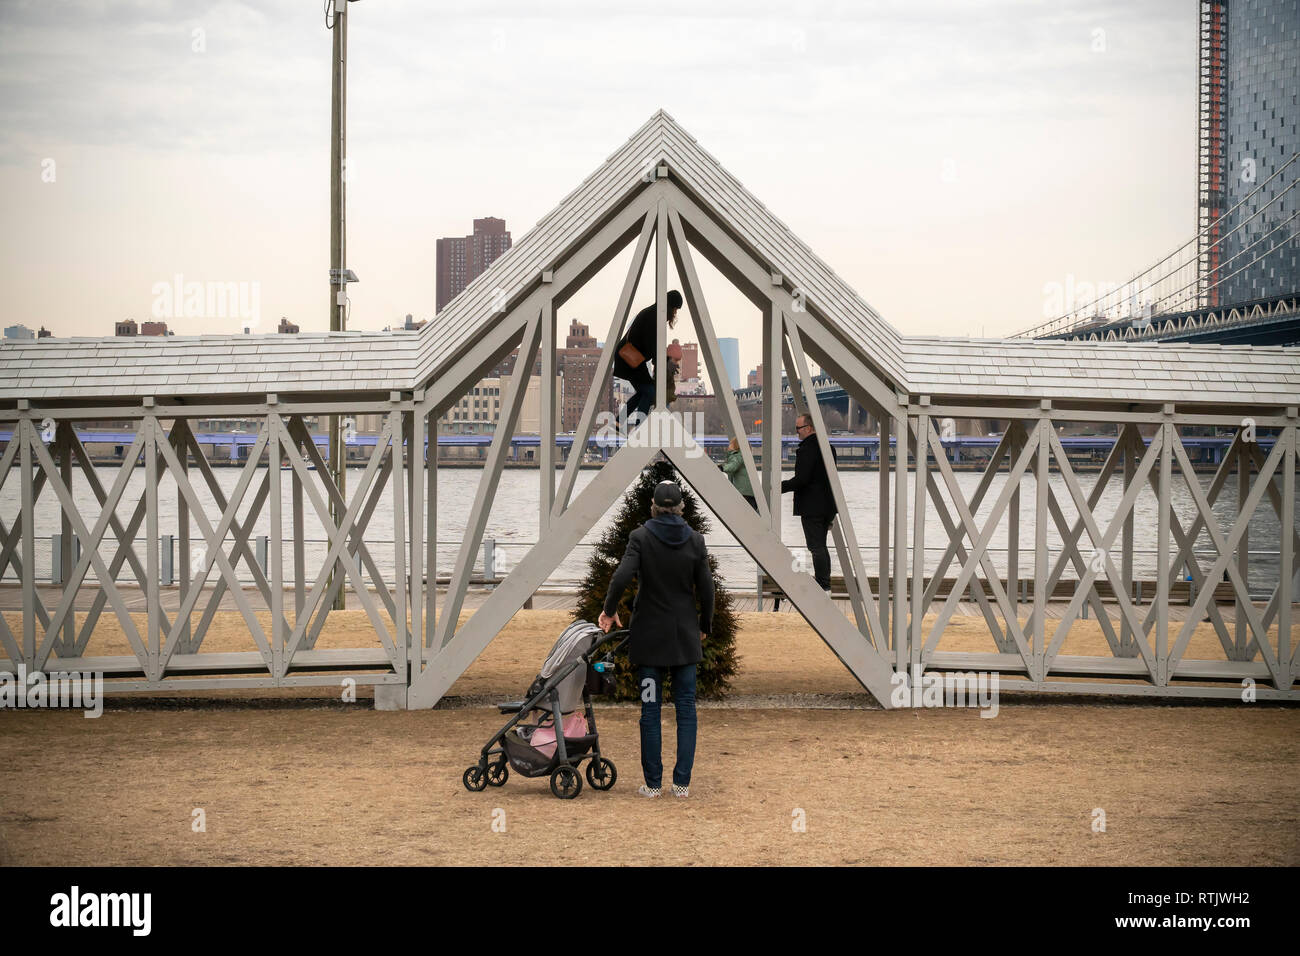 Siah Armajani's experiential public art sculpture, 'Bridge Over Tree' is enjoyed by visitors to Brooklyn Bridge Park, between the Manhattan and Brooklyn bridges, in New York on Saturday, February 23, 2019. The 91-foot long piece with stairs in the center lifts the participant over a lone evergreen tree  and it is the first time the 1970 piece has been displayed in almost 50 years. The Met Breuer is hosting a retrospective of the Minneapolis based artists' works and 'Bridge Over Tree' will be on display in the park until September 29. (© Richard B. Levine) - Stock Image